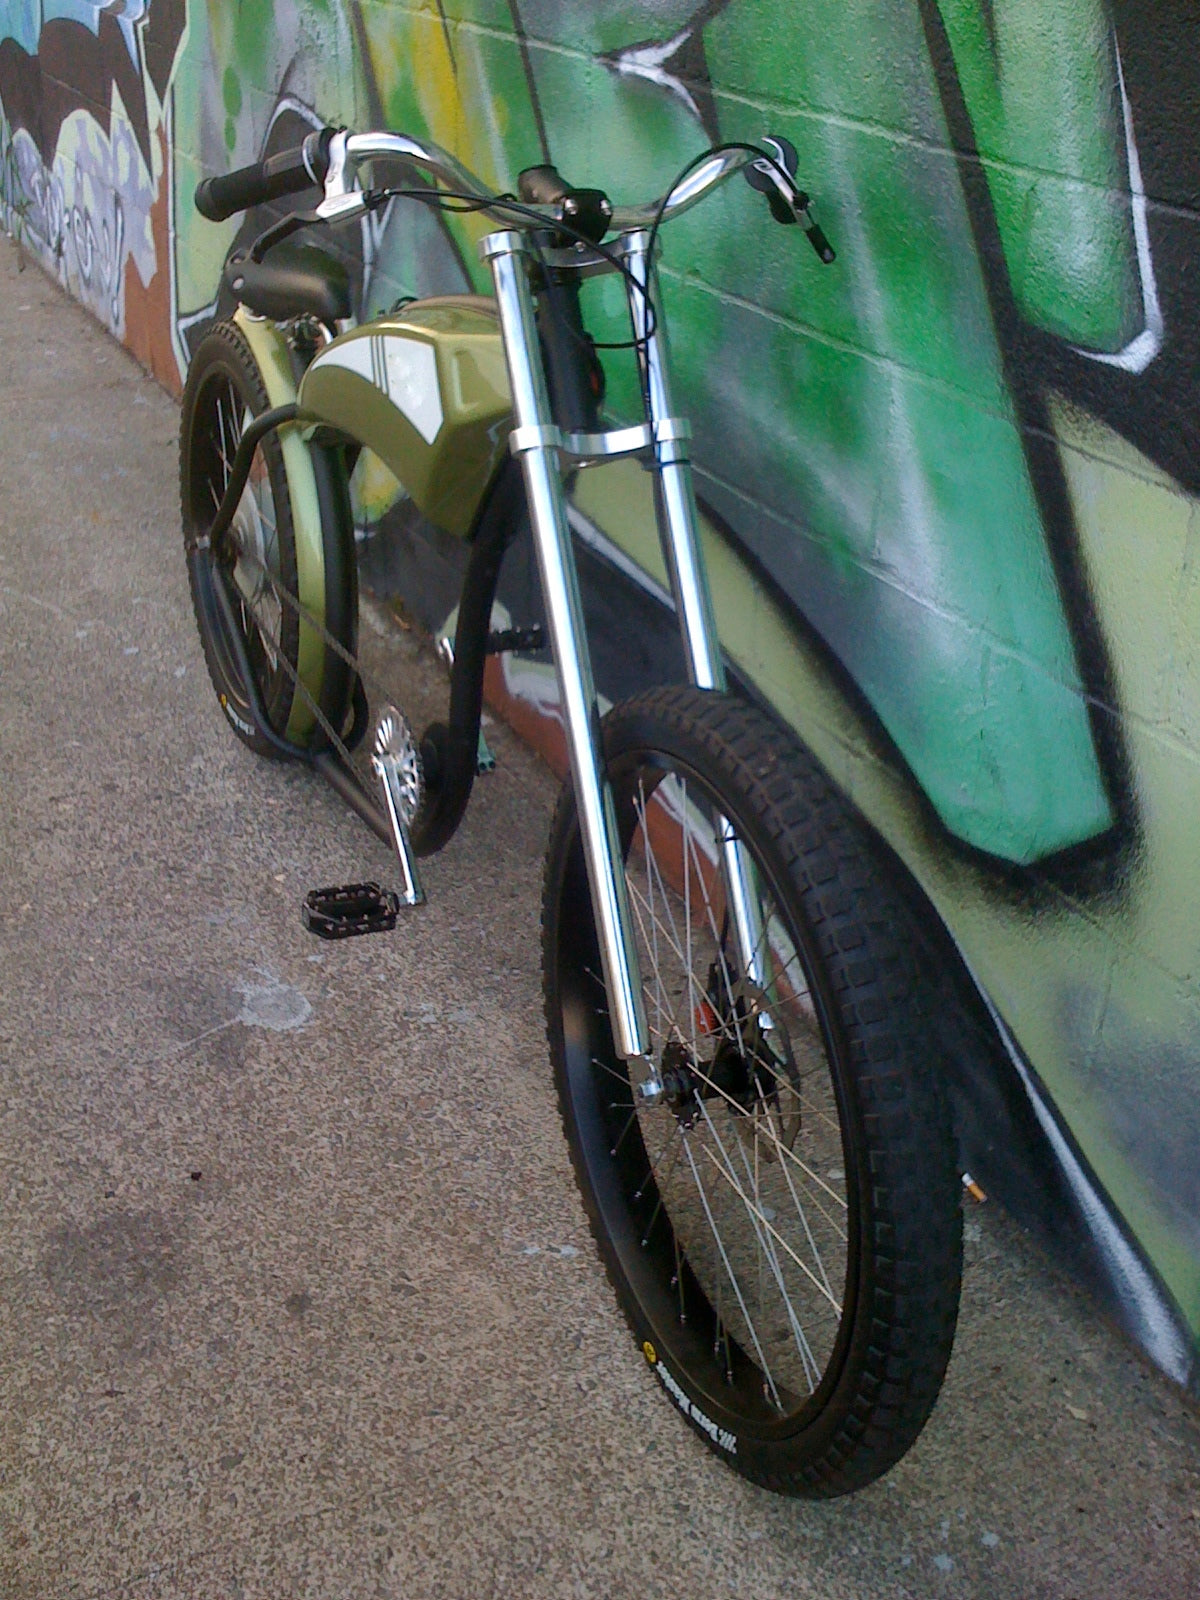 37df97bce01 The Chopper Electric Street Bike 2 seen from above